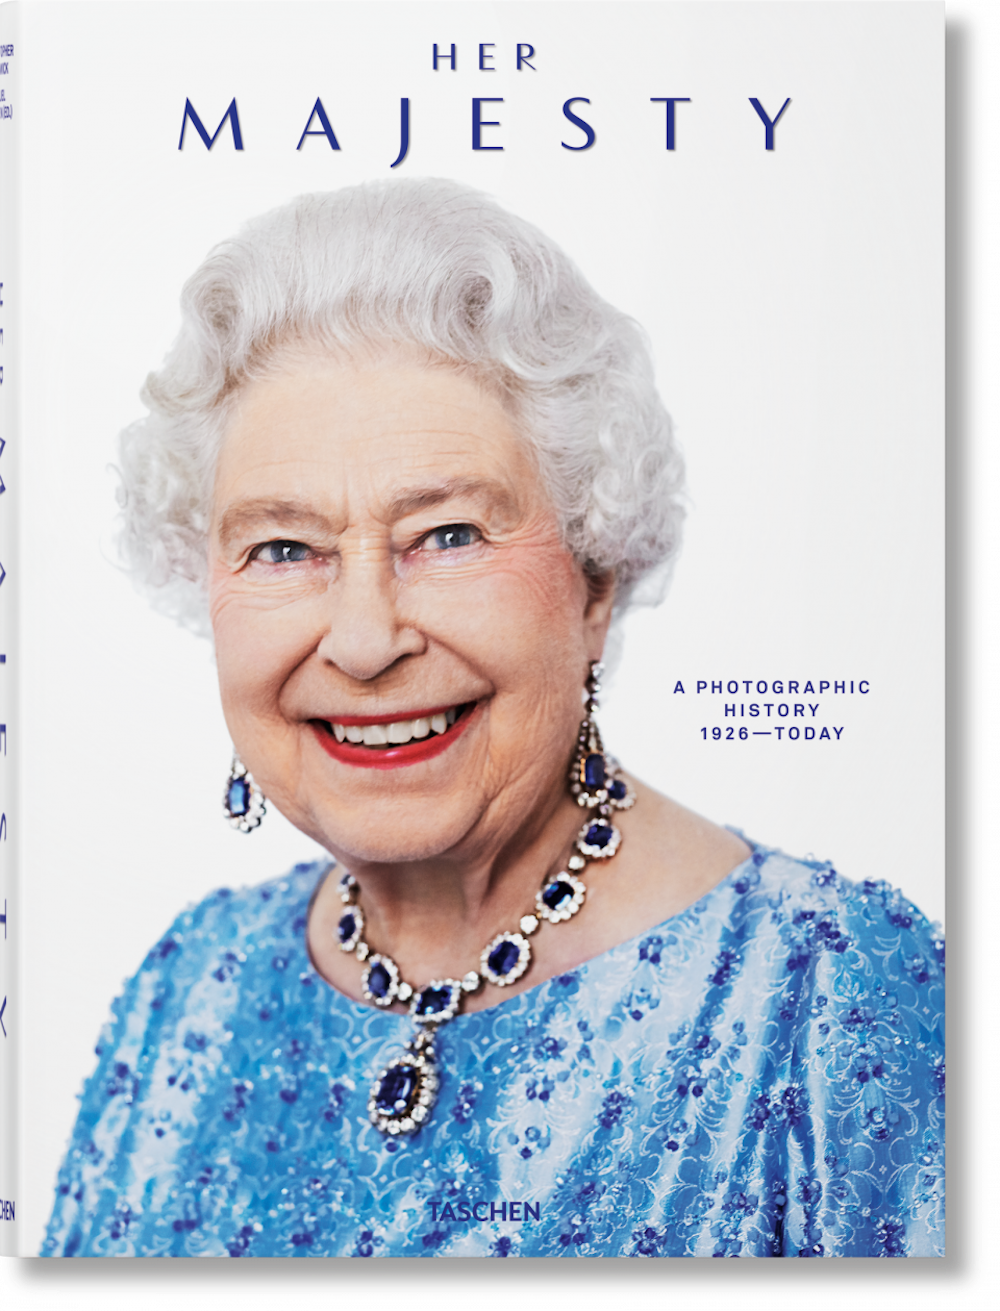 Her Majesty: A Photographic History 1926-Today